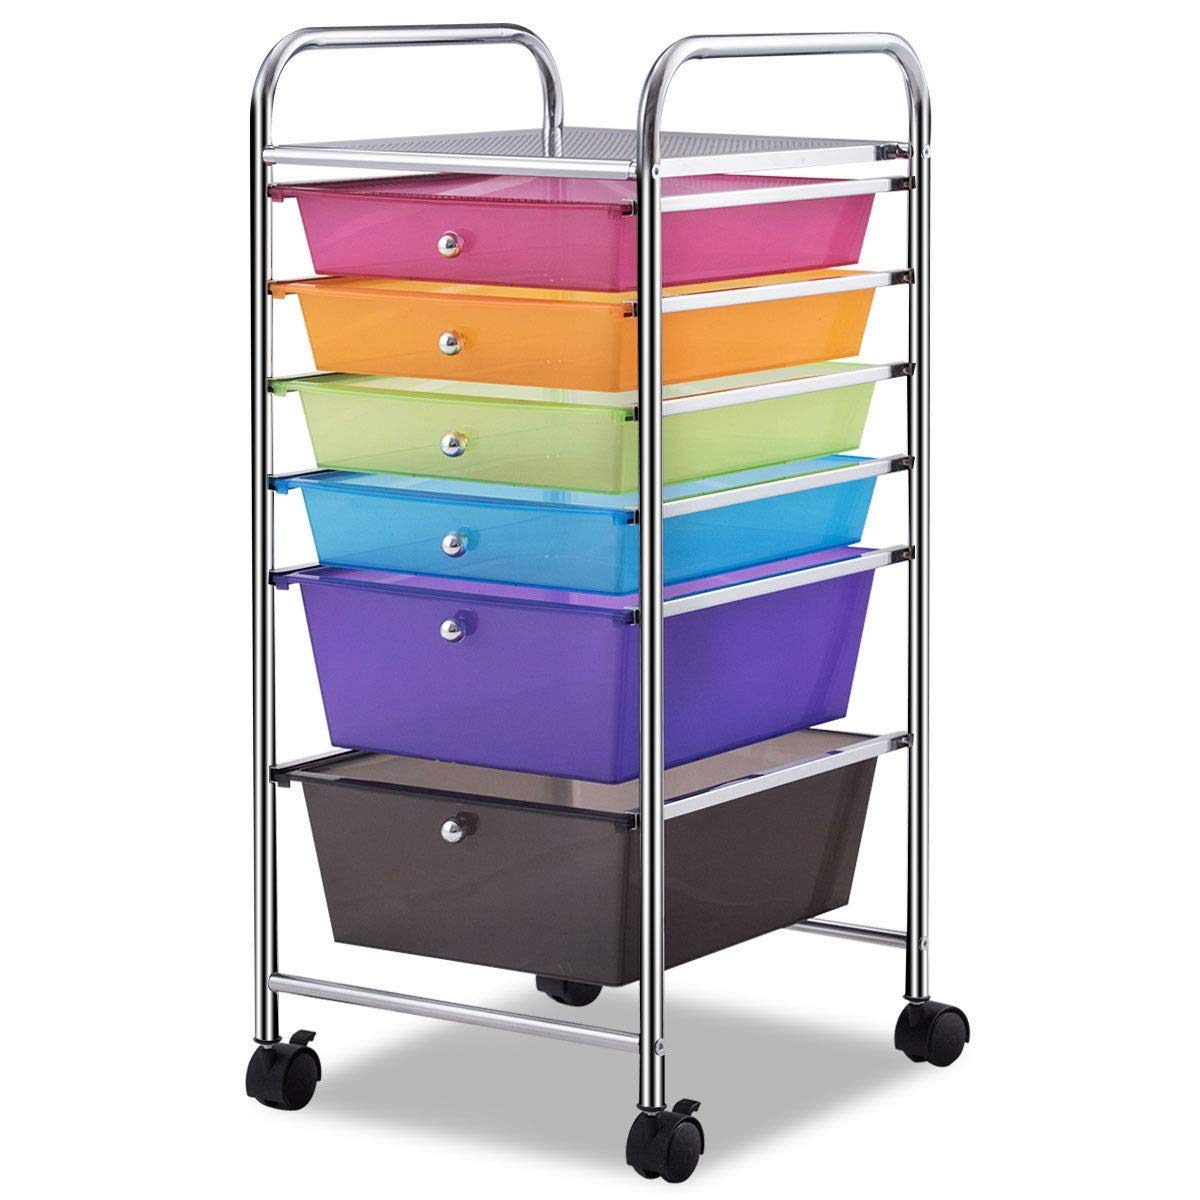 USA_Best_Seller 6 Drawers Sturdy Colorful Rolling Storage Cart Organizer Steel PP Bathroom Dorm Rooms Closets Kitchen Office Furniture Moving Wheels Clear Plastic Brakes